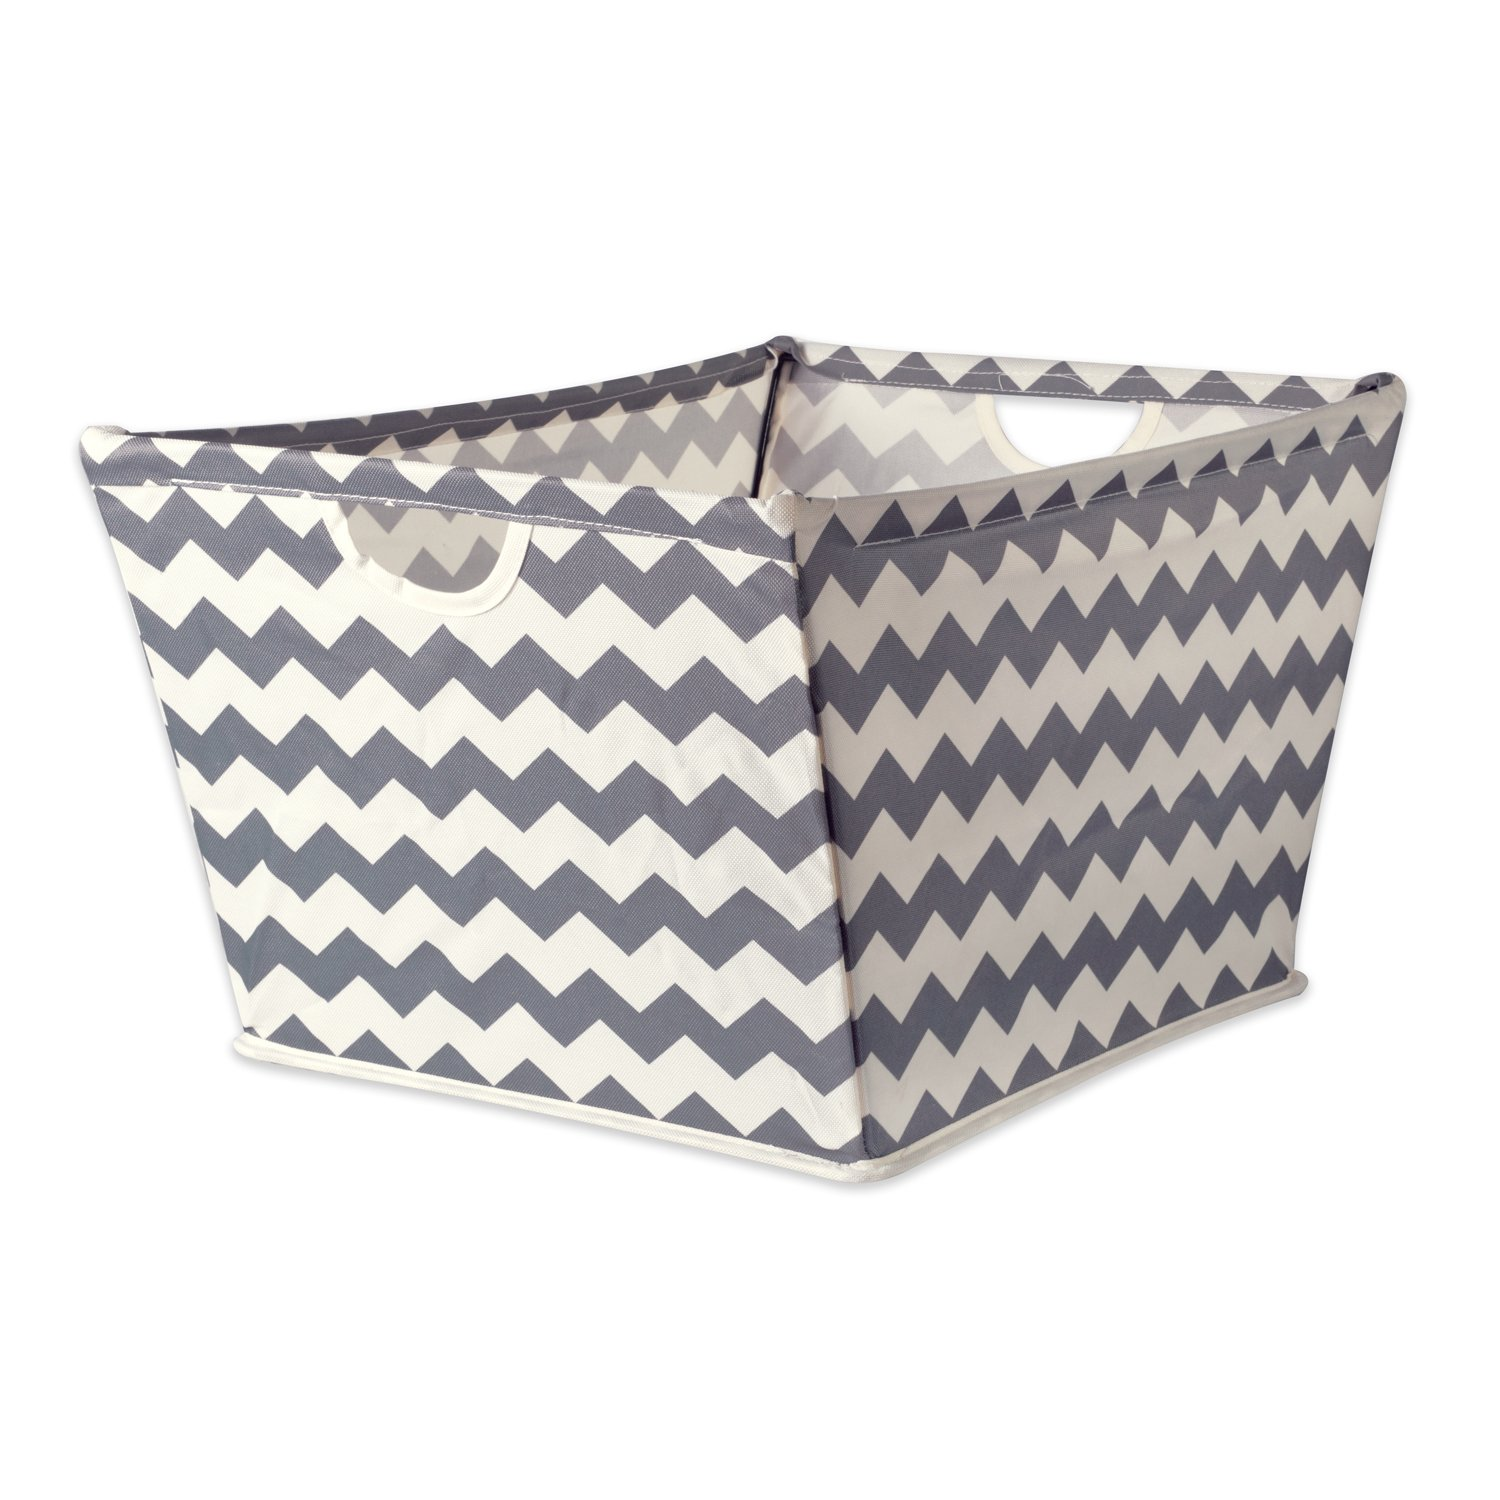 DII Polyester Trapezoid Collapsible Storage Basket, For Office, Bedroom, Closet, & Toys - Small, Gray Chevron CAMZ36942